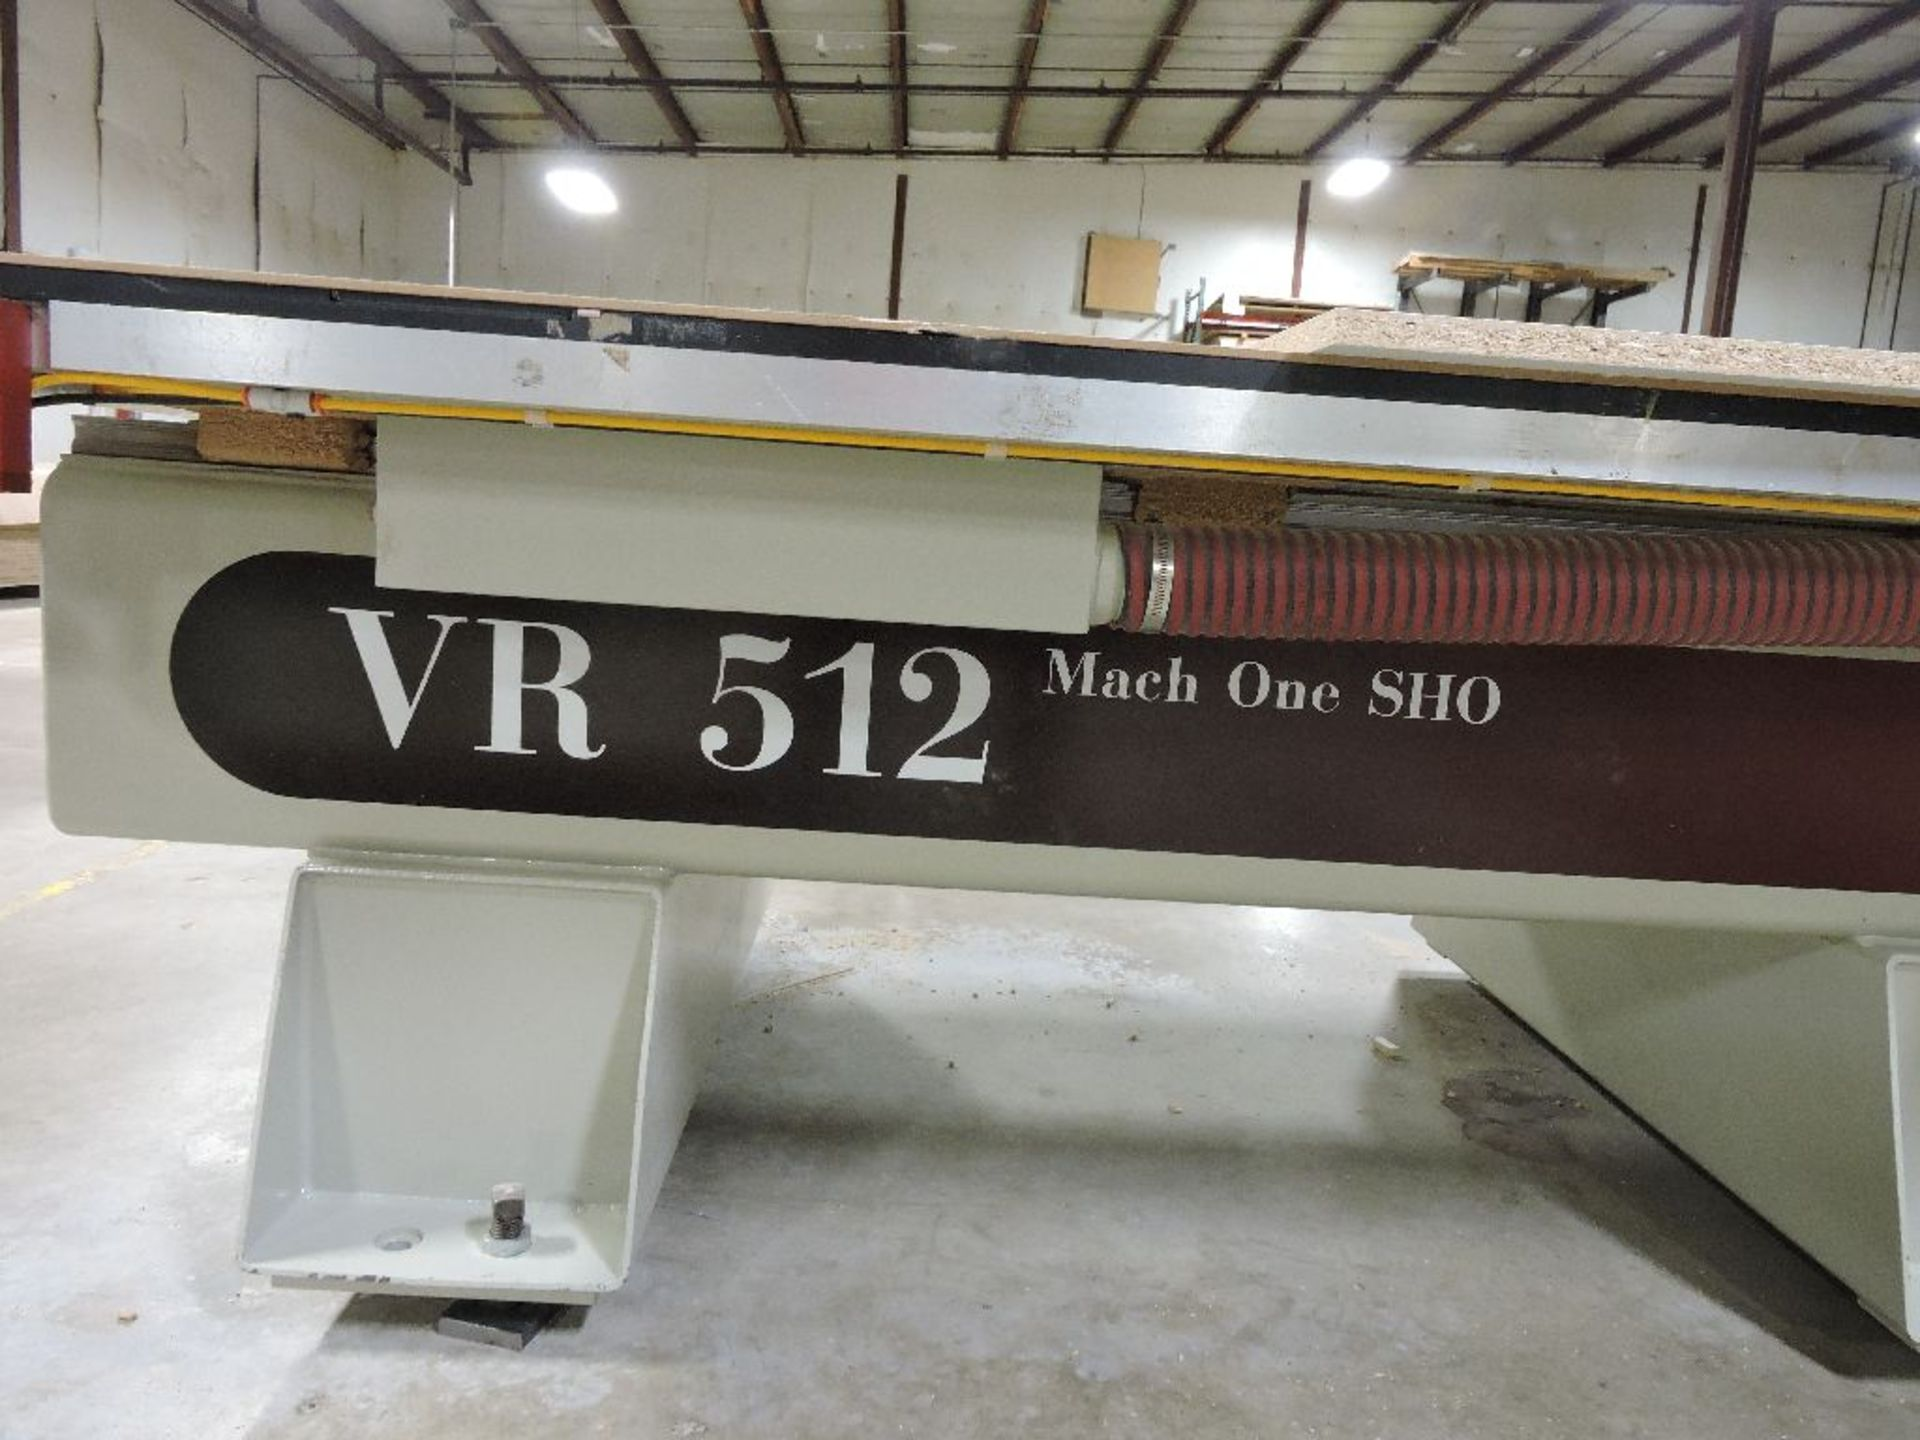 Lot 010 - 2006 Komo CNC router, model VR512, sn 57103-06, hrs. on CNC router 4,857, 5'x 12' table, 9